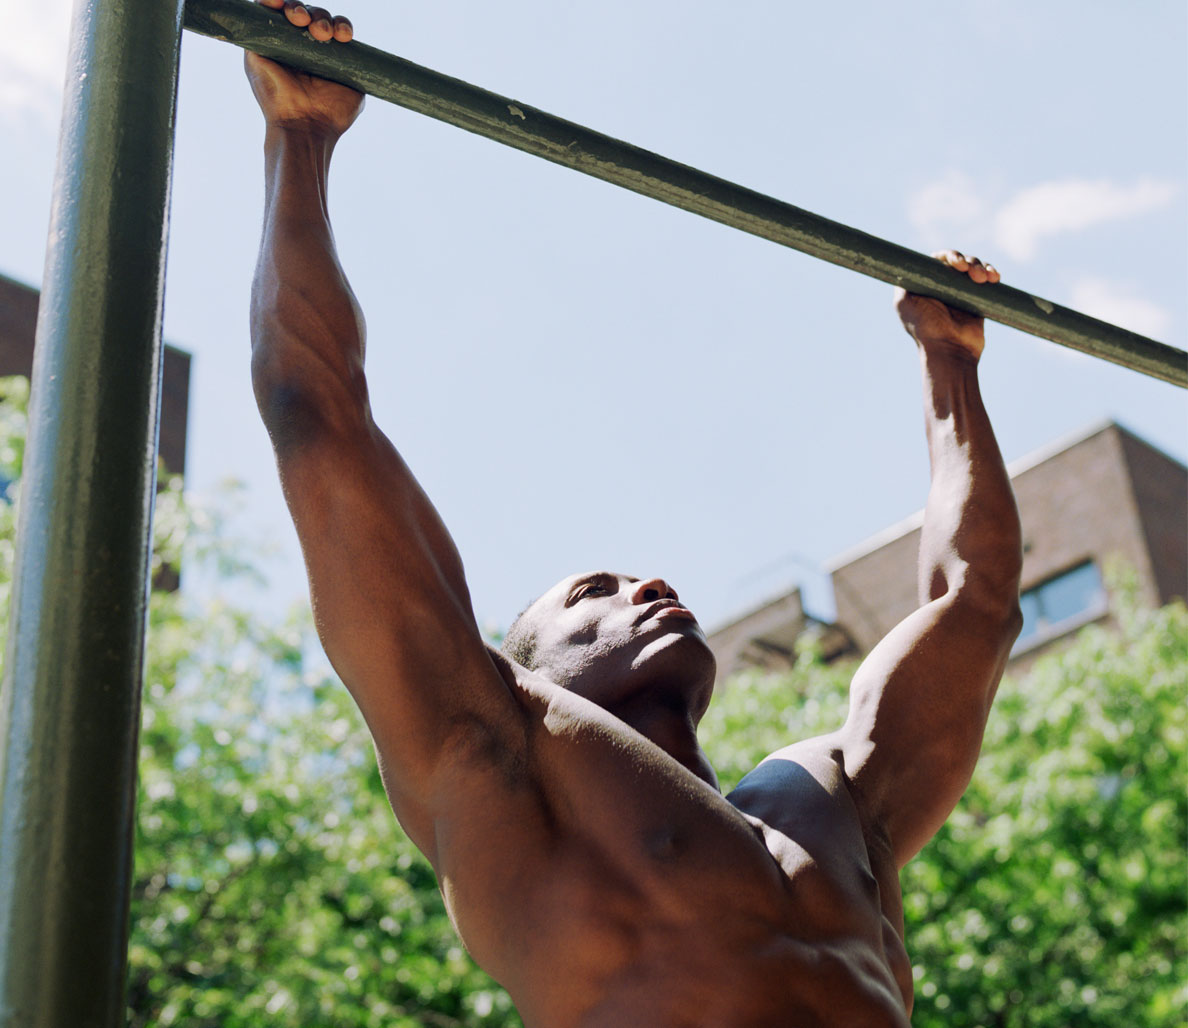 Gain explosiveness with full body workout exercises